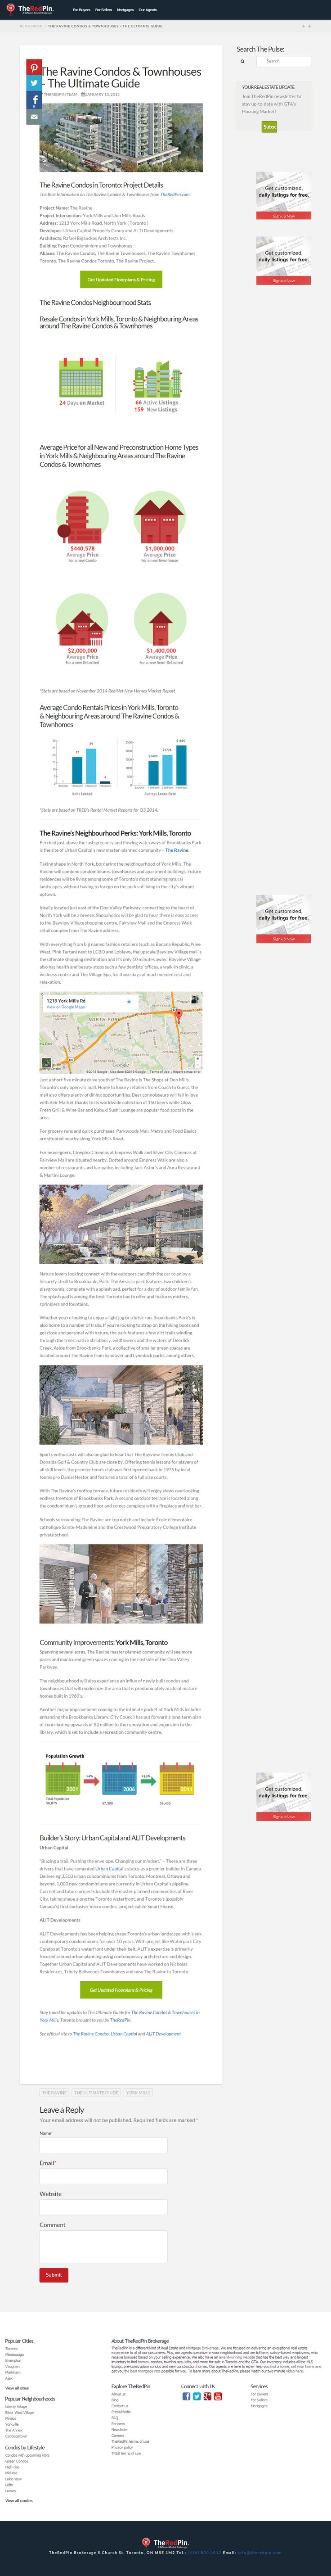 The Ravine Condos & Townhouses – The Ultimate Guide